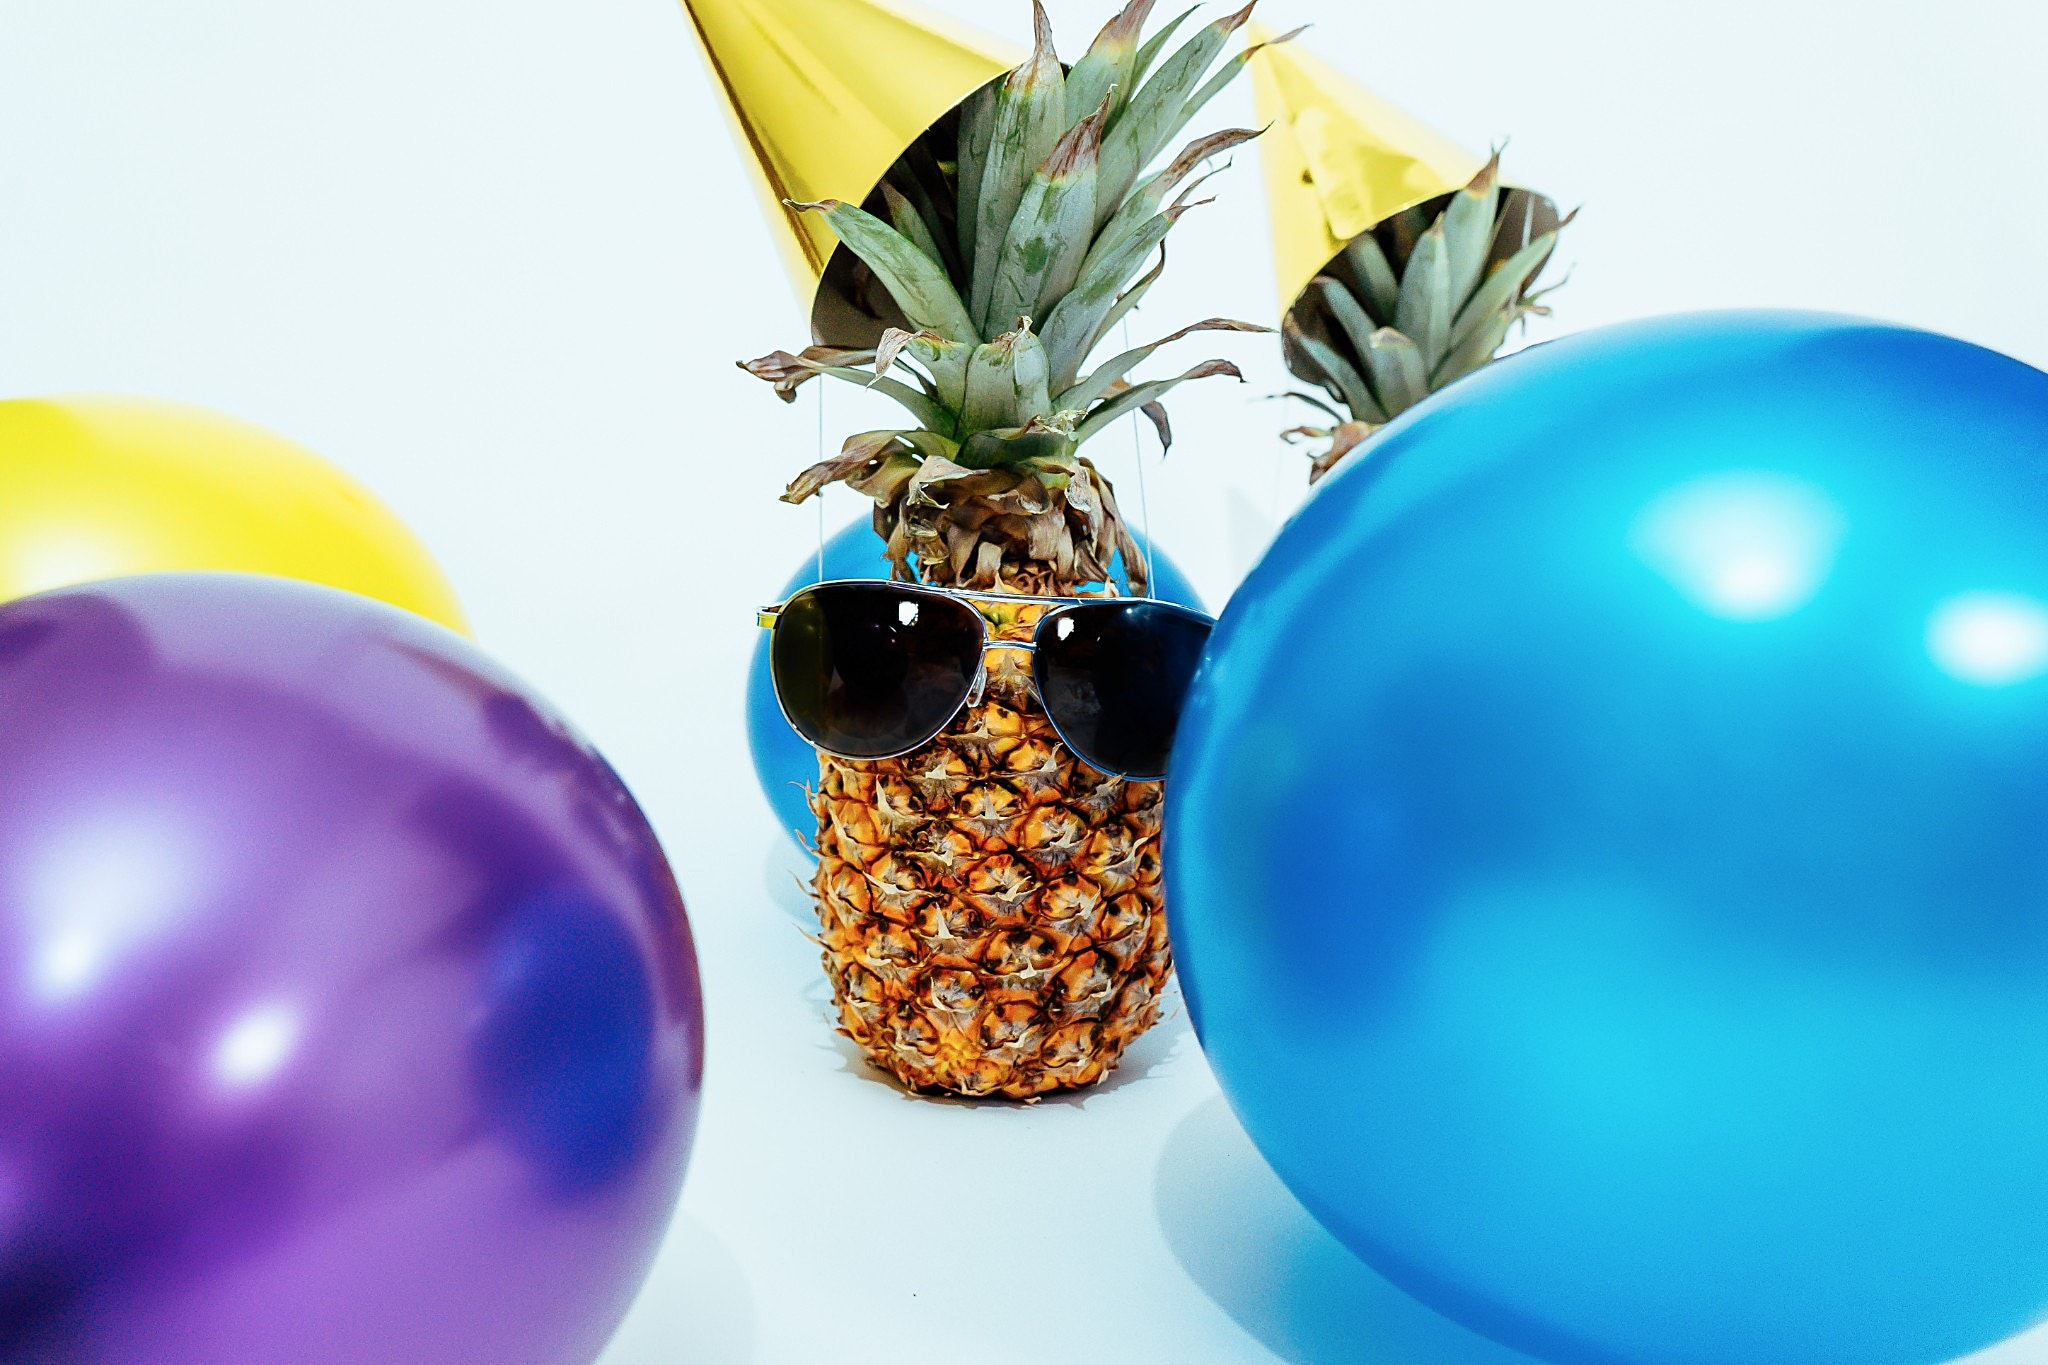 A pineapple with balloons